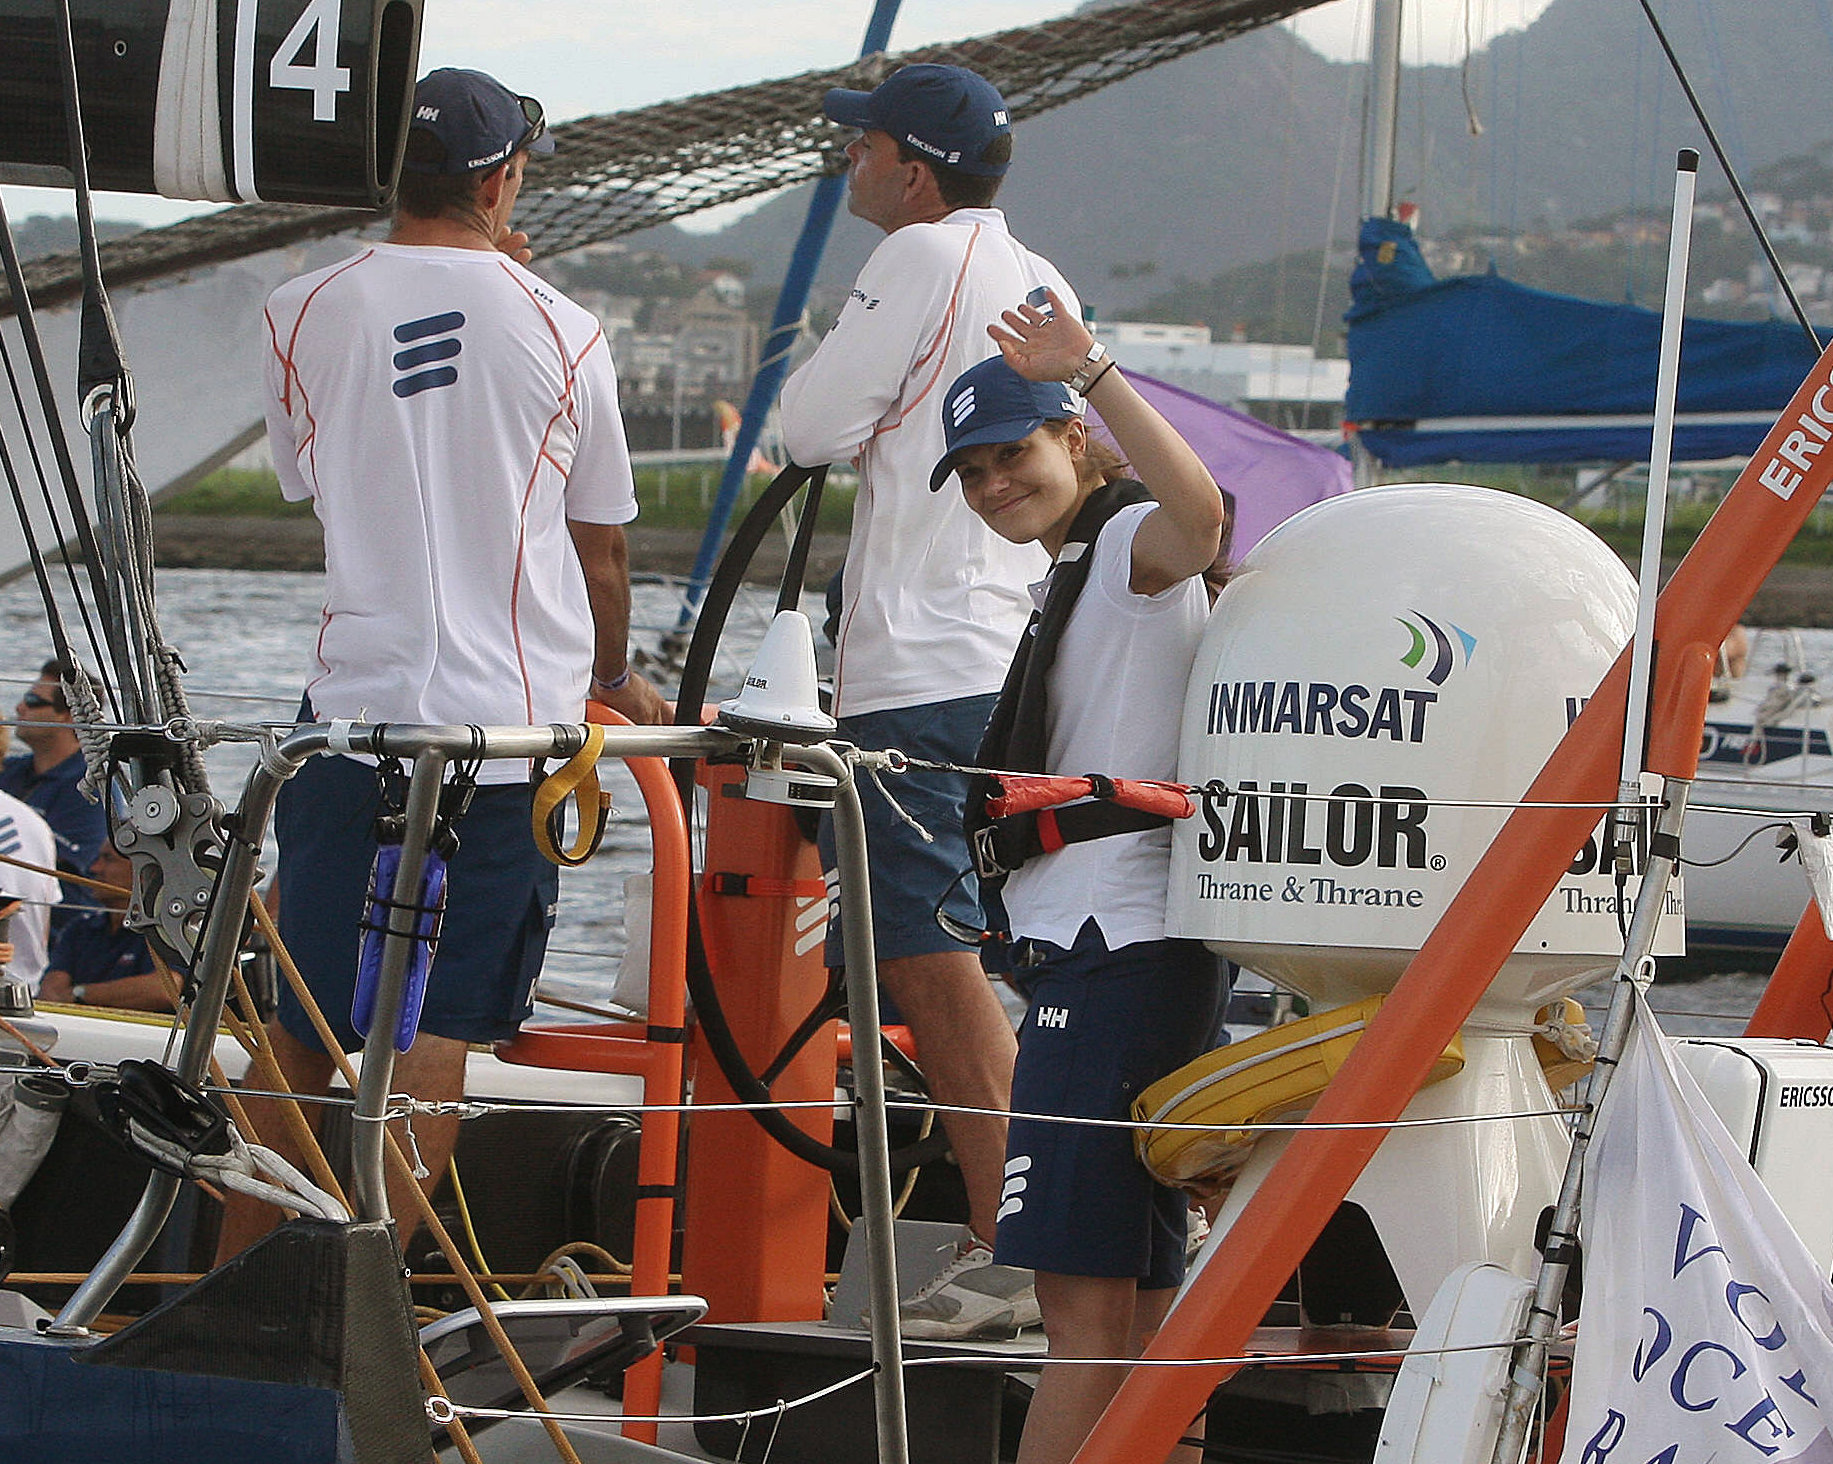 Princess Victoria (C) of Sweden waves to the press on board the Ericsson 4, before the start of the In-Port Race in Guanabara Bay in Rio de Janeiro on April 04, 2009 within the Volvo Ocean Race 2008/2009